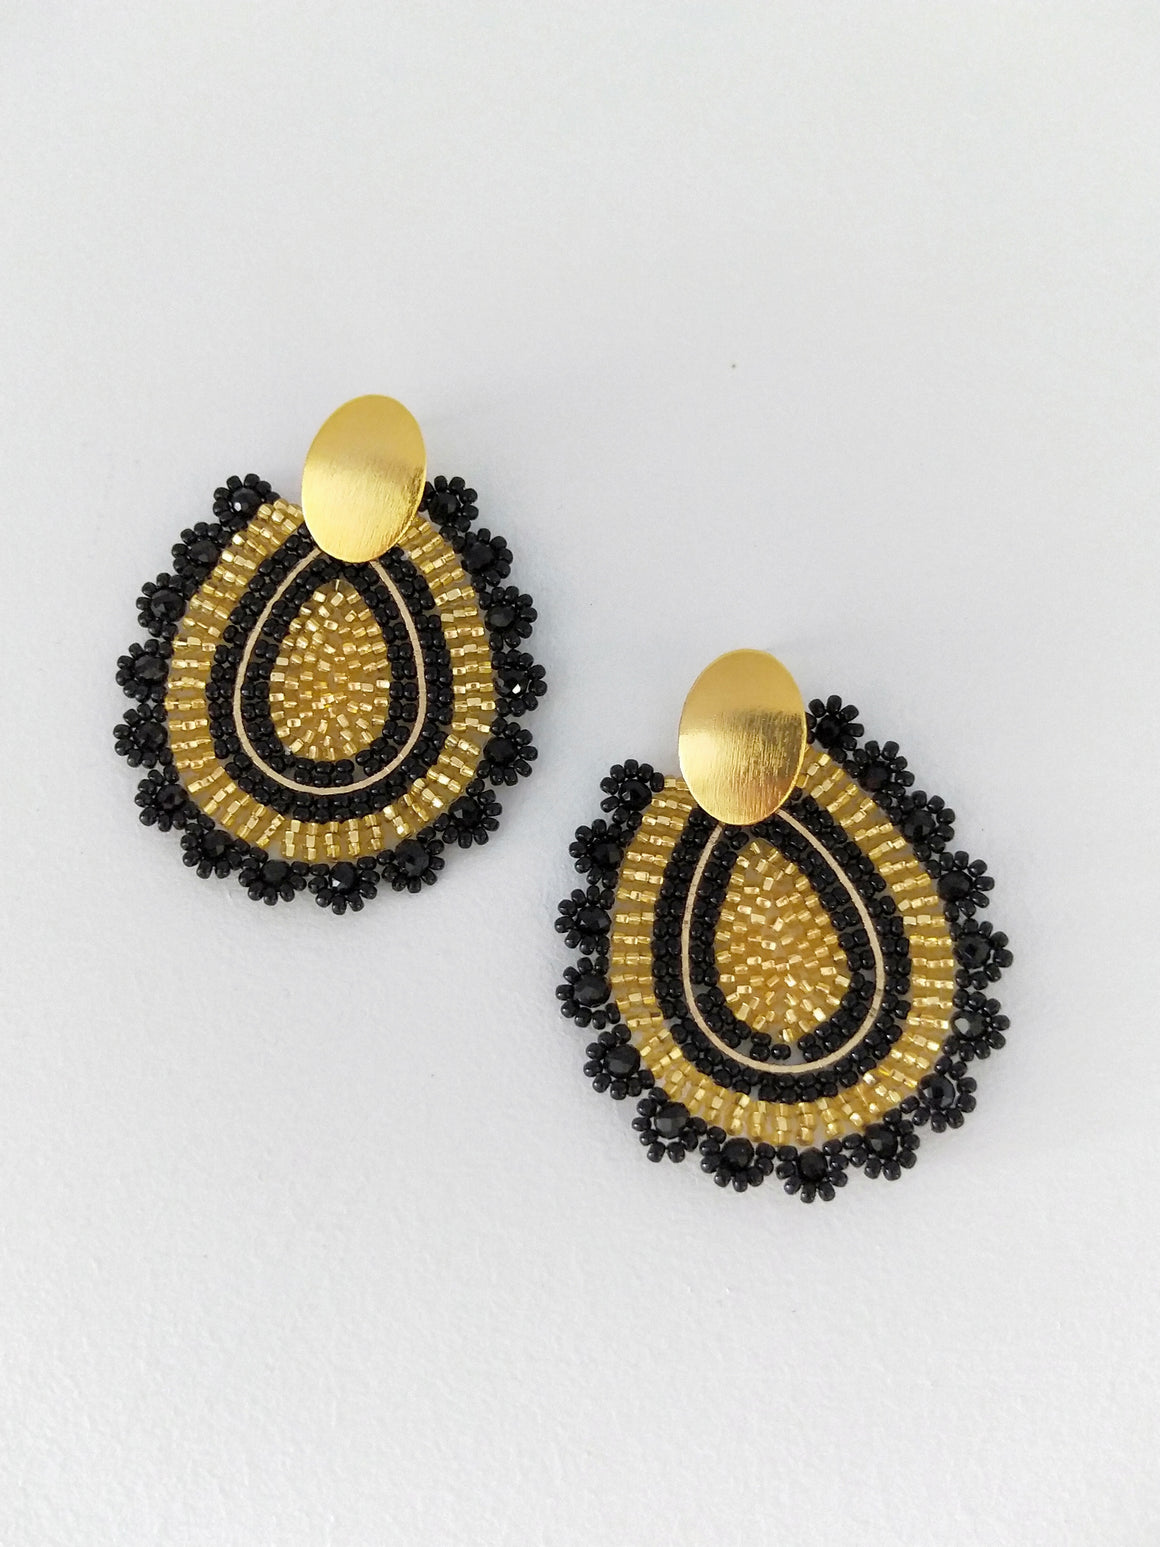 Gota Llena-Earrings-Colombian Label Co.